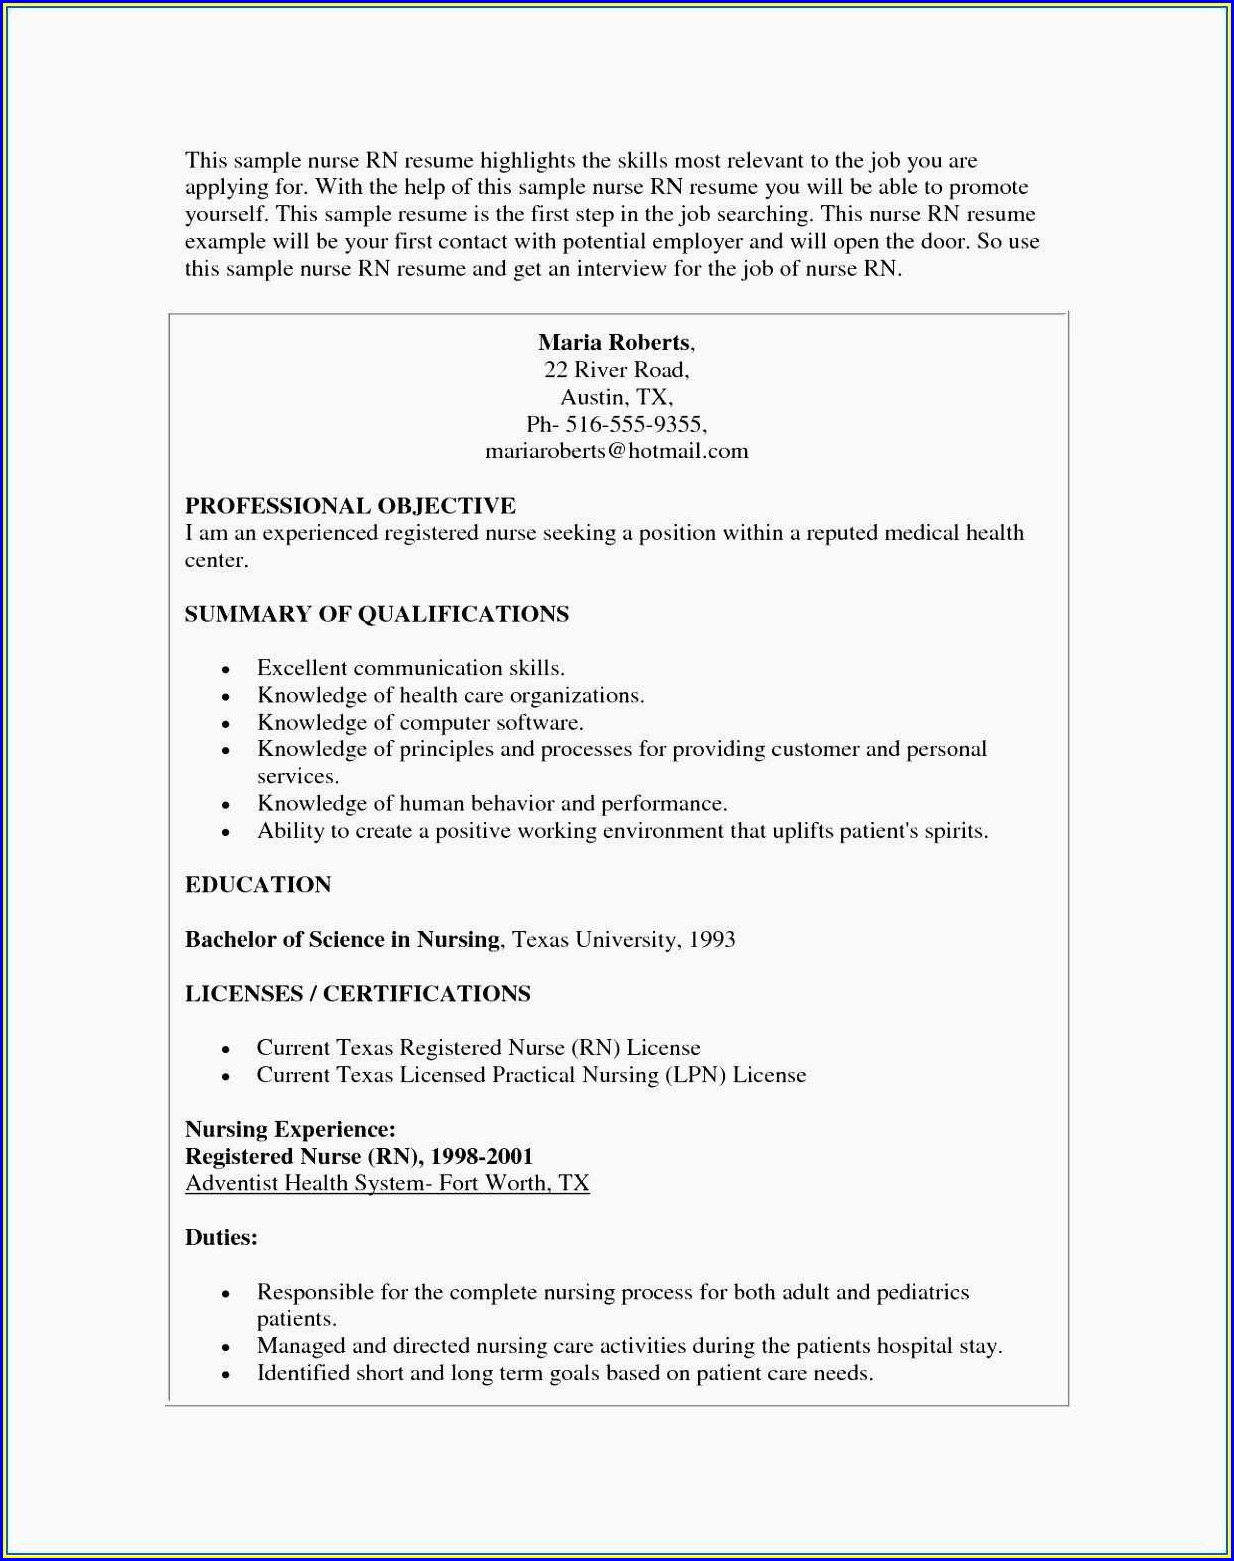 Resume For Cna Job Description